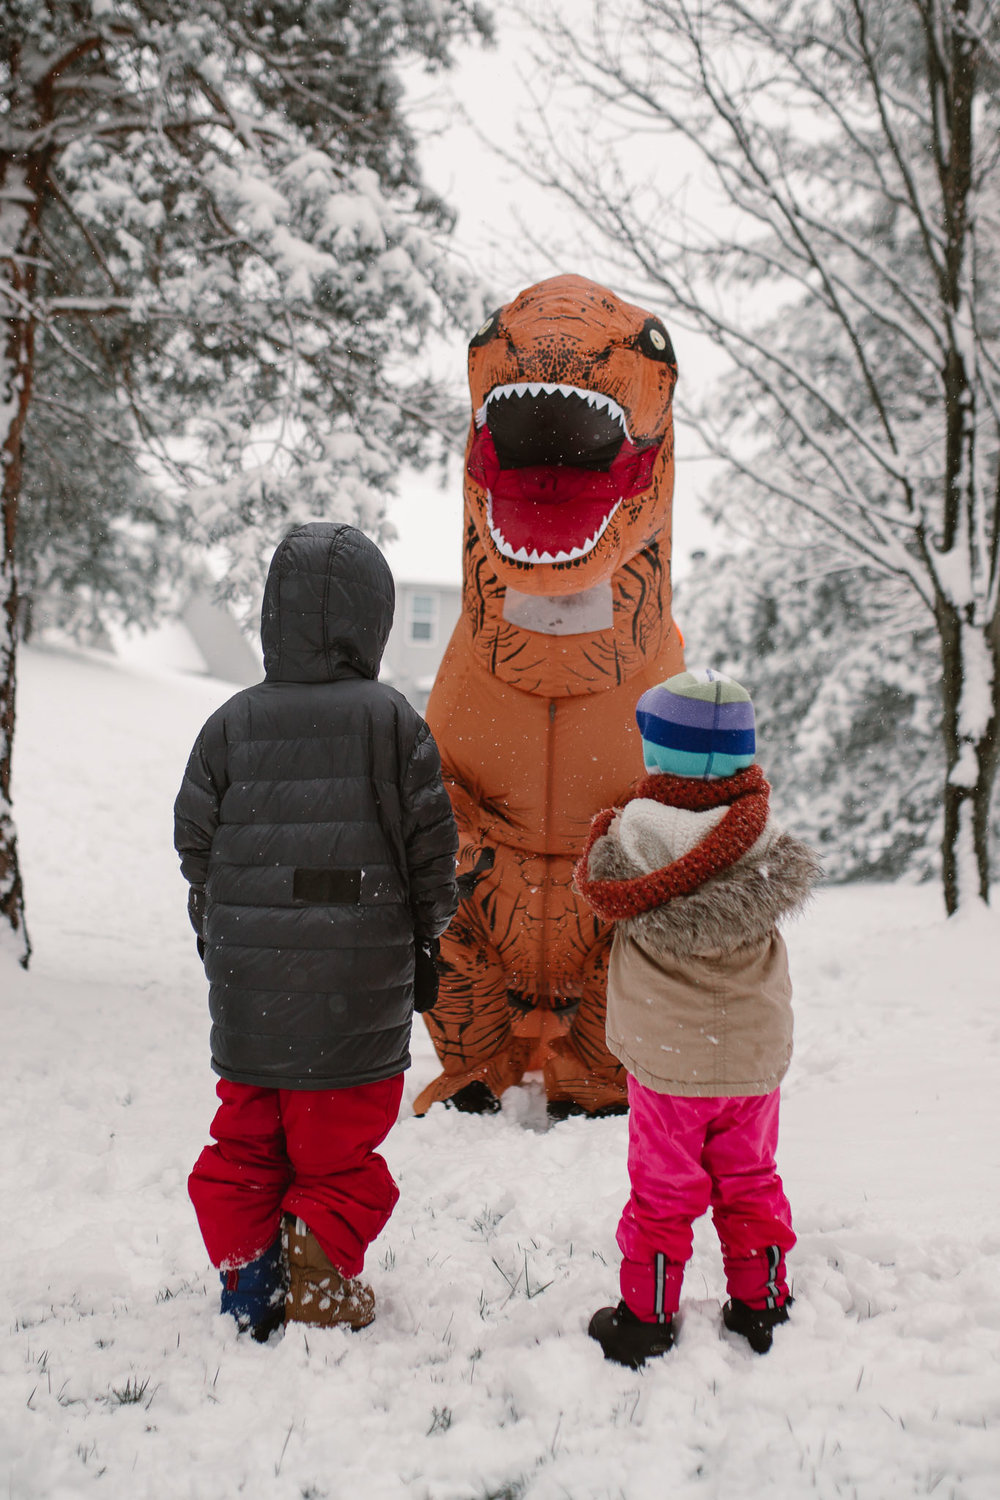 Two children stare up at a big orange dinosaur as they play outside in the snow